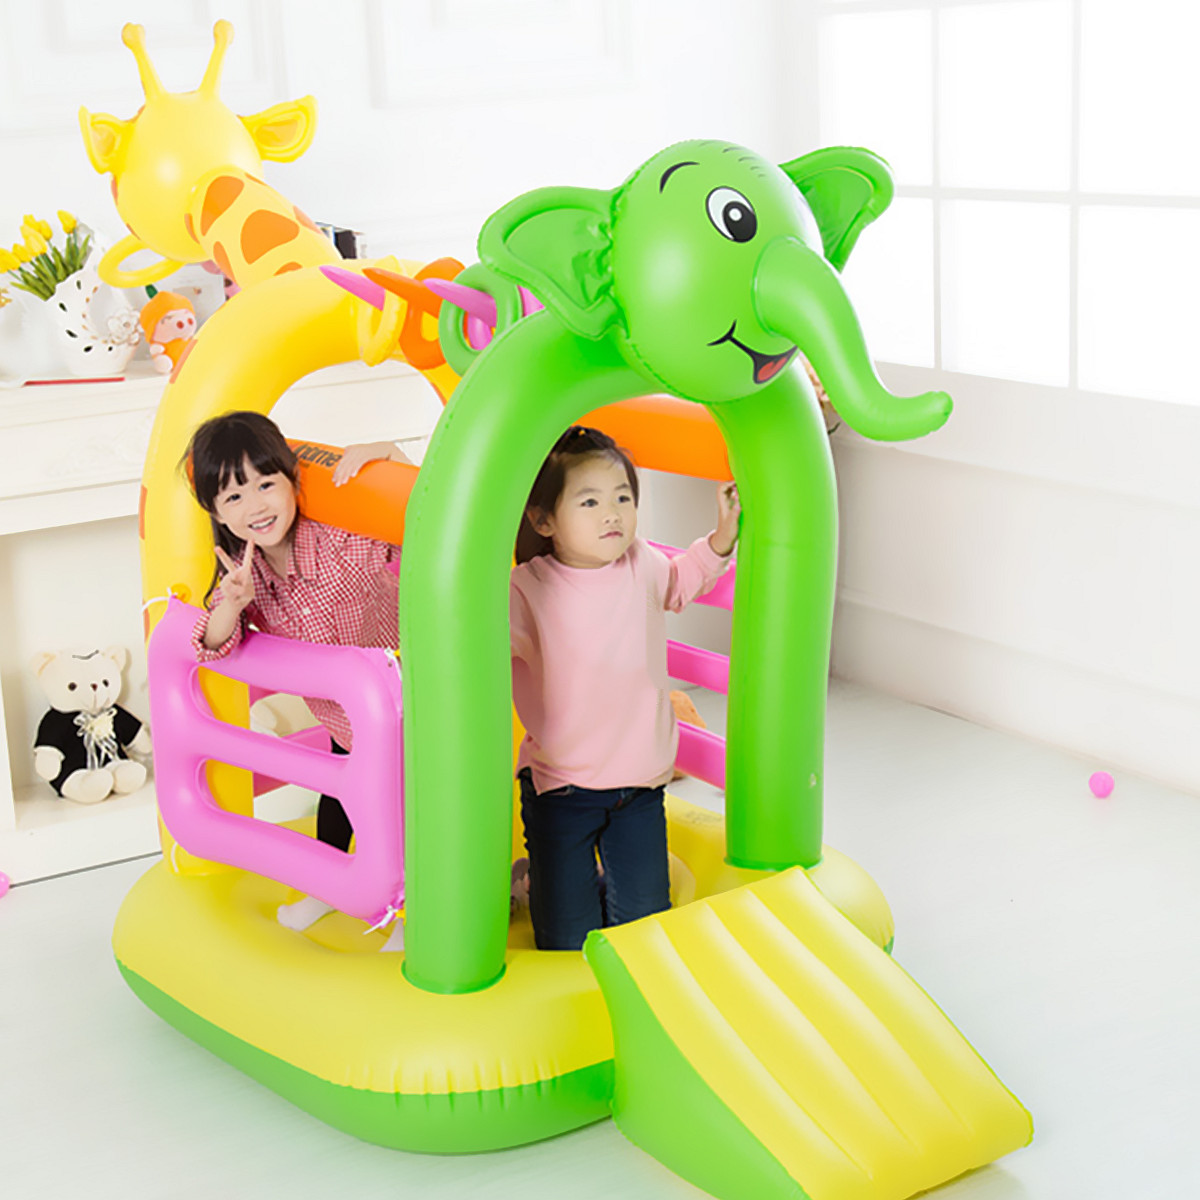 Inflatable Kids Children Bouncy Slide Castle Jumping Bouncer PVC House Outdoor Play Multi functional Design Colorful Non toxic